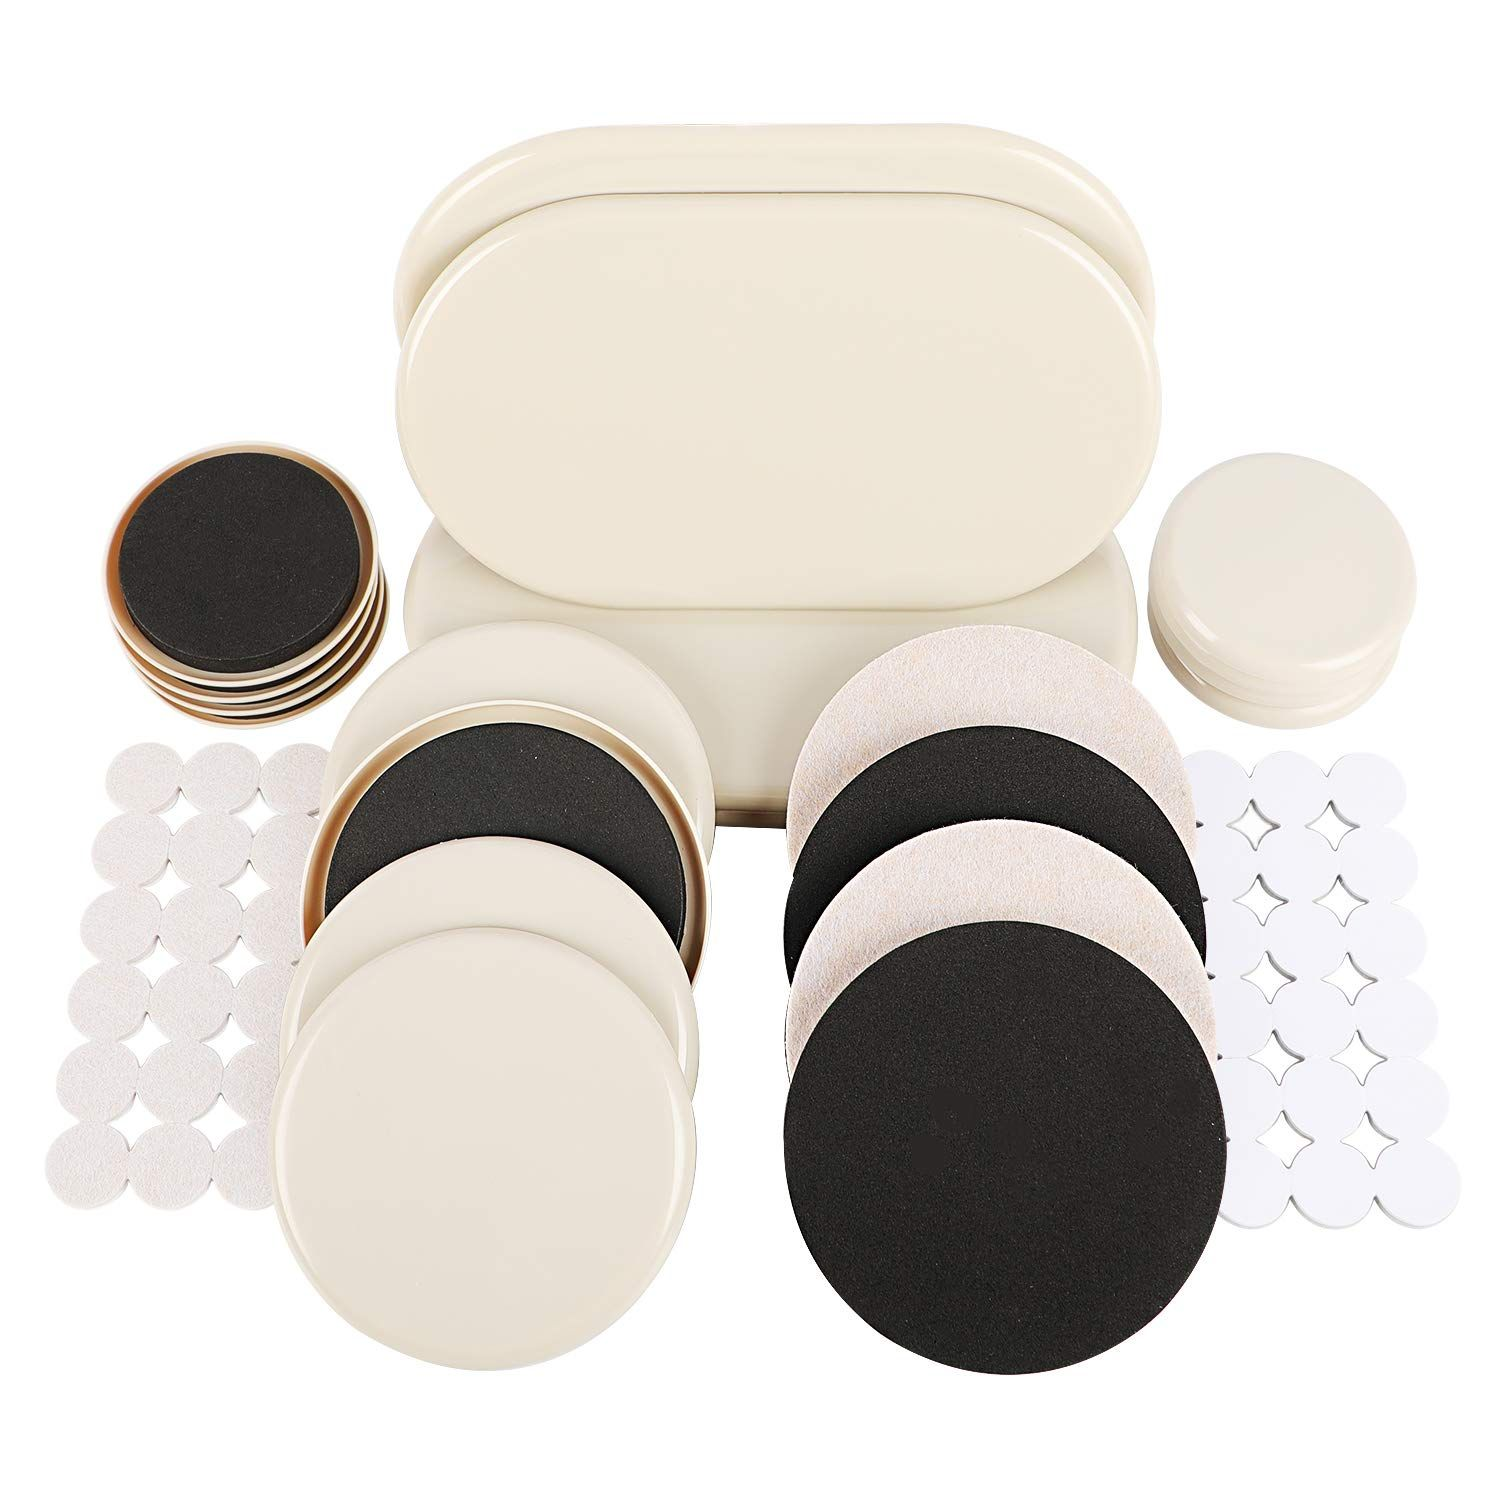 56 Pcs Furniture Sliders And Furniture Pads For Heavy Furniture Carpet Large Moving Sliders Furniture Sliders Furniture Pads Furniture Hardware